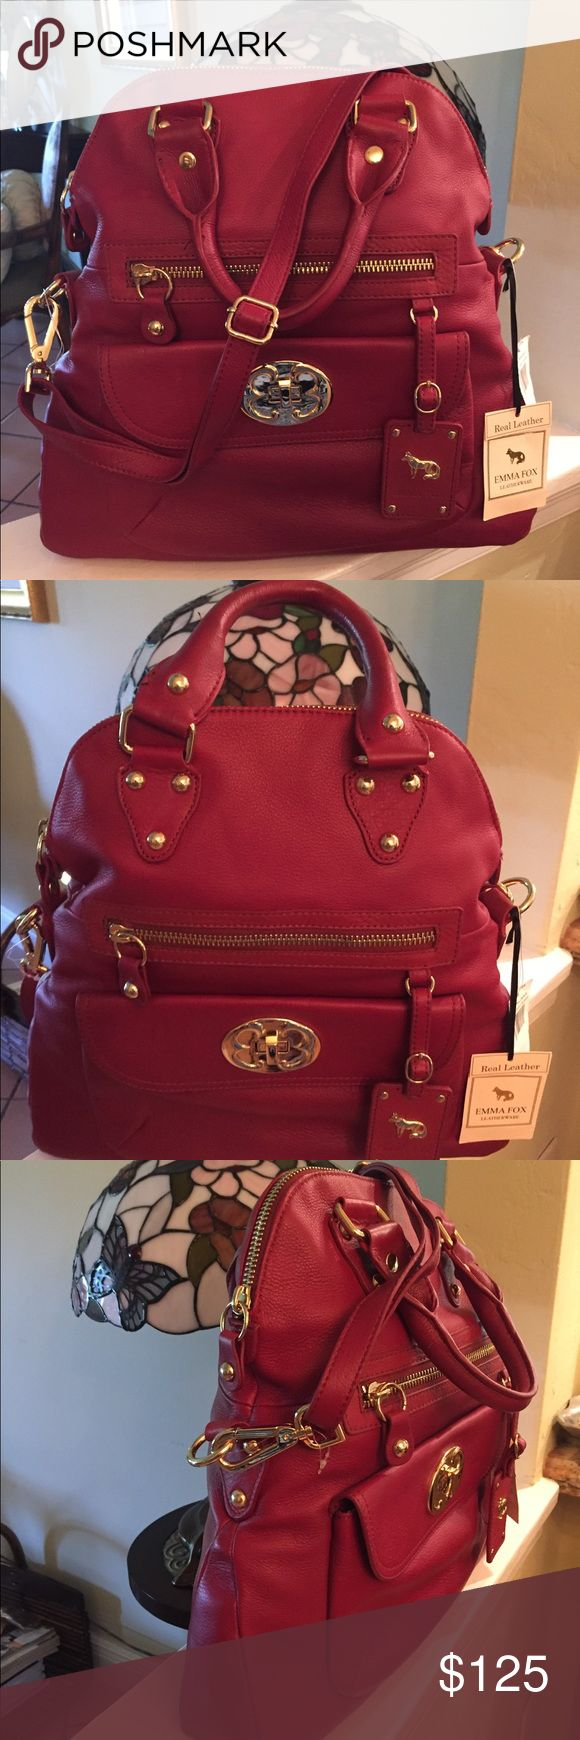 Emma Fox leather classic foldover/crossbody bag Beautiful leather bag. Bordeaux color can be used as a satchel or crossbody Emma Fox Bags Crossbody Bags